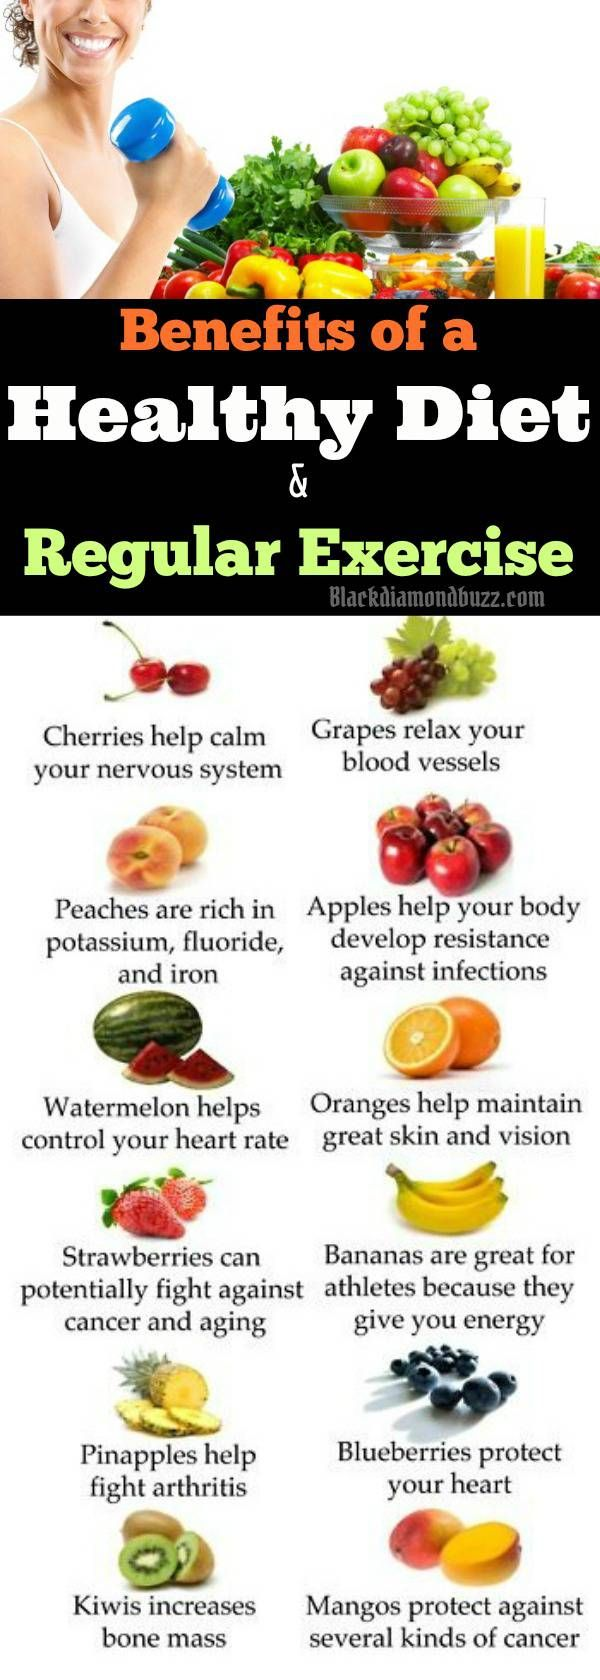 Benefits of a Healthy Diet and Regular Exercise for Healthy lifestyle . It helps you lose weight, lower the risk of some cancer , boost energy, sleep better,lower the risk of types 2 diabetes ,Strengthen your bones and muscles,boost your energy and improve Your mental health and mood.